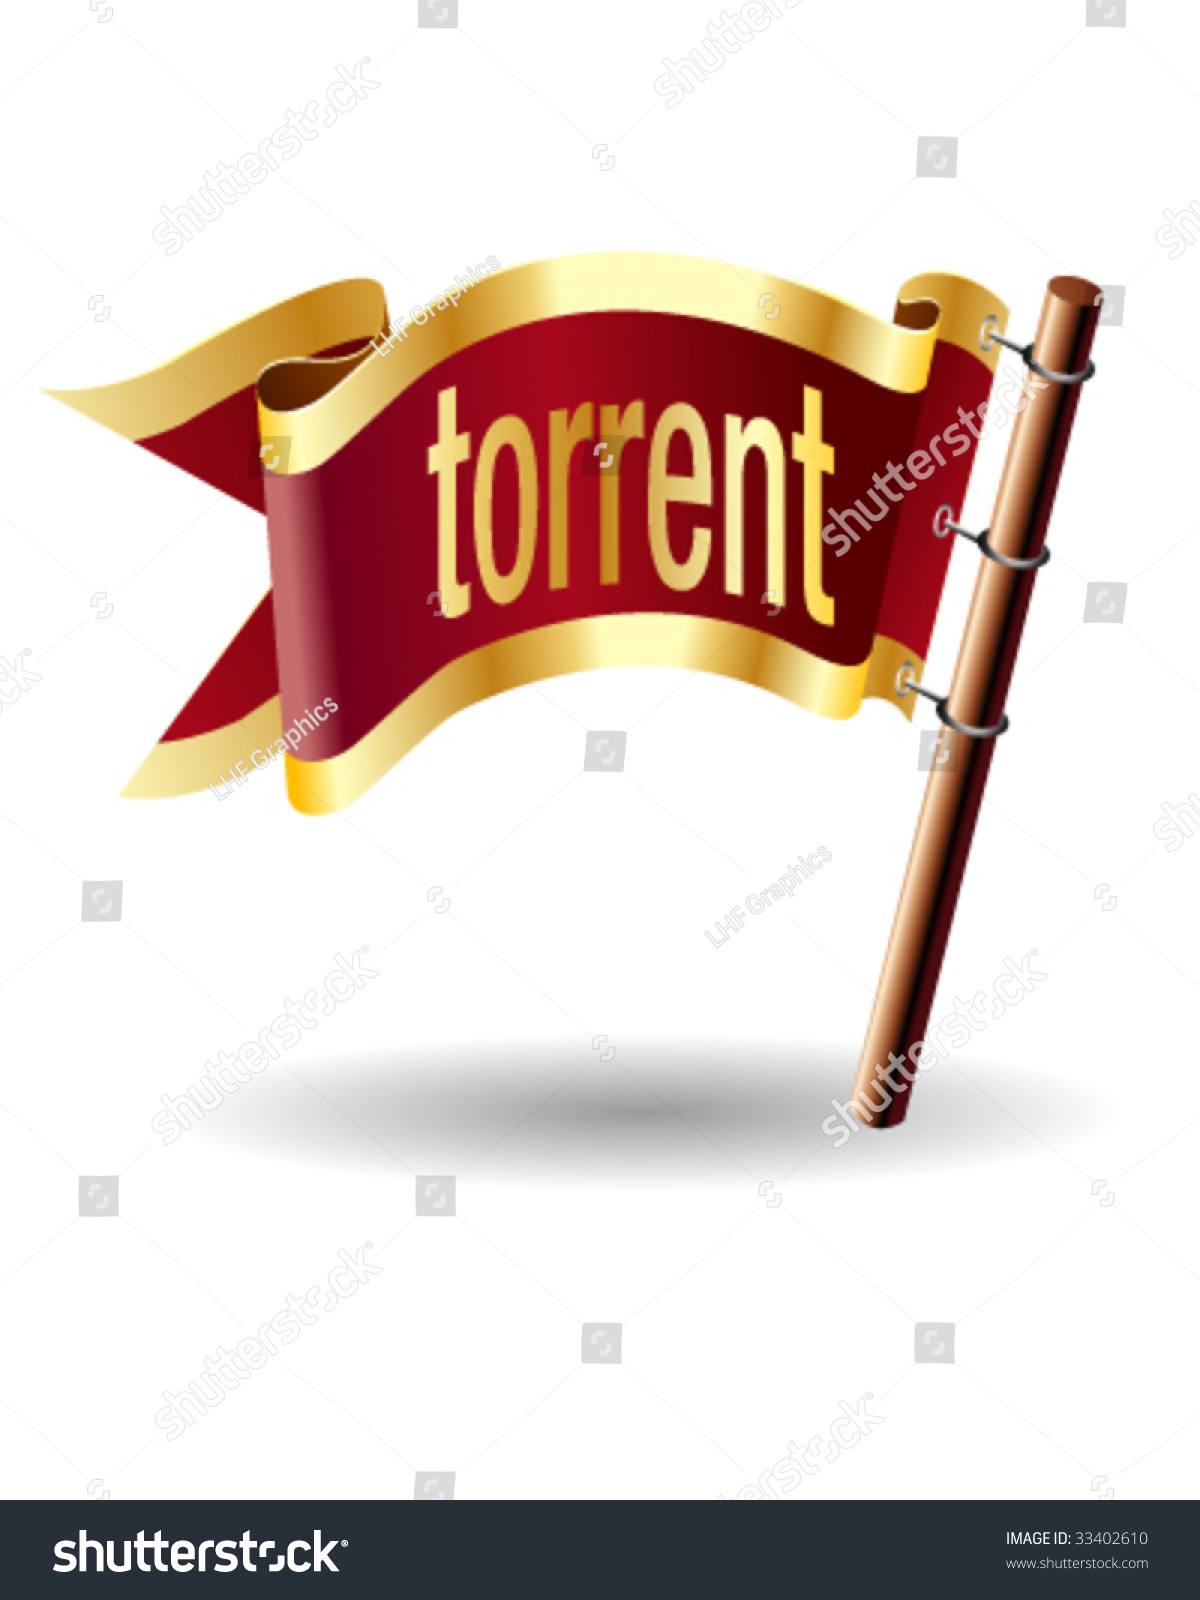 TORRENT Computer File Extension Icon On Stock Vector